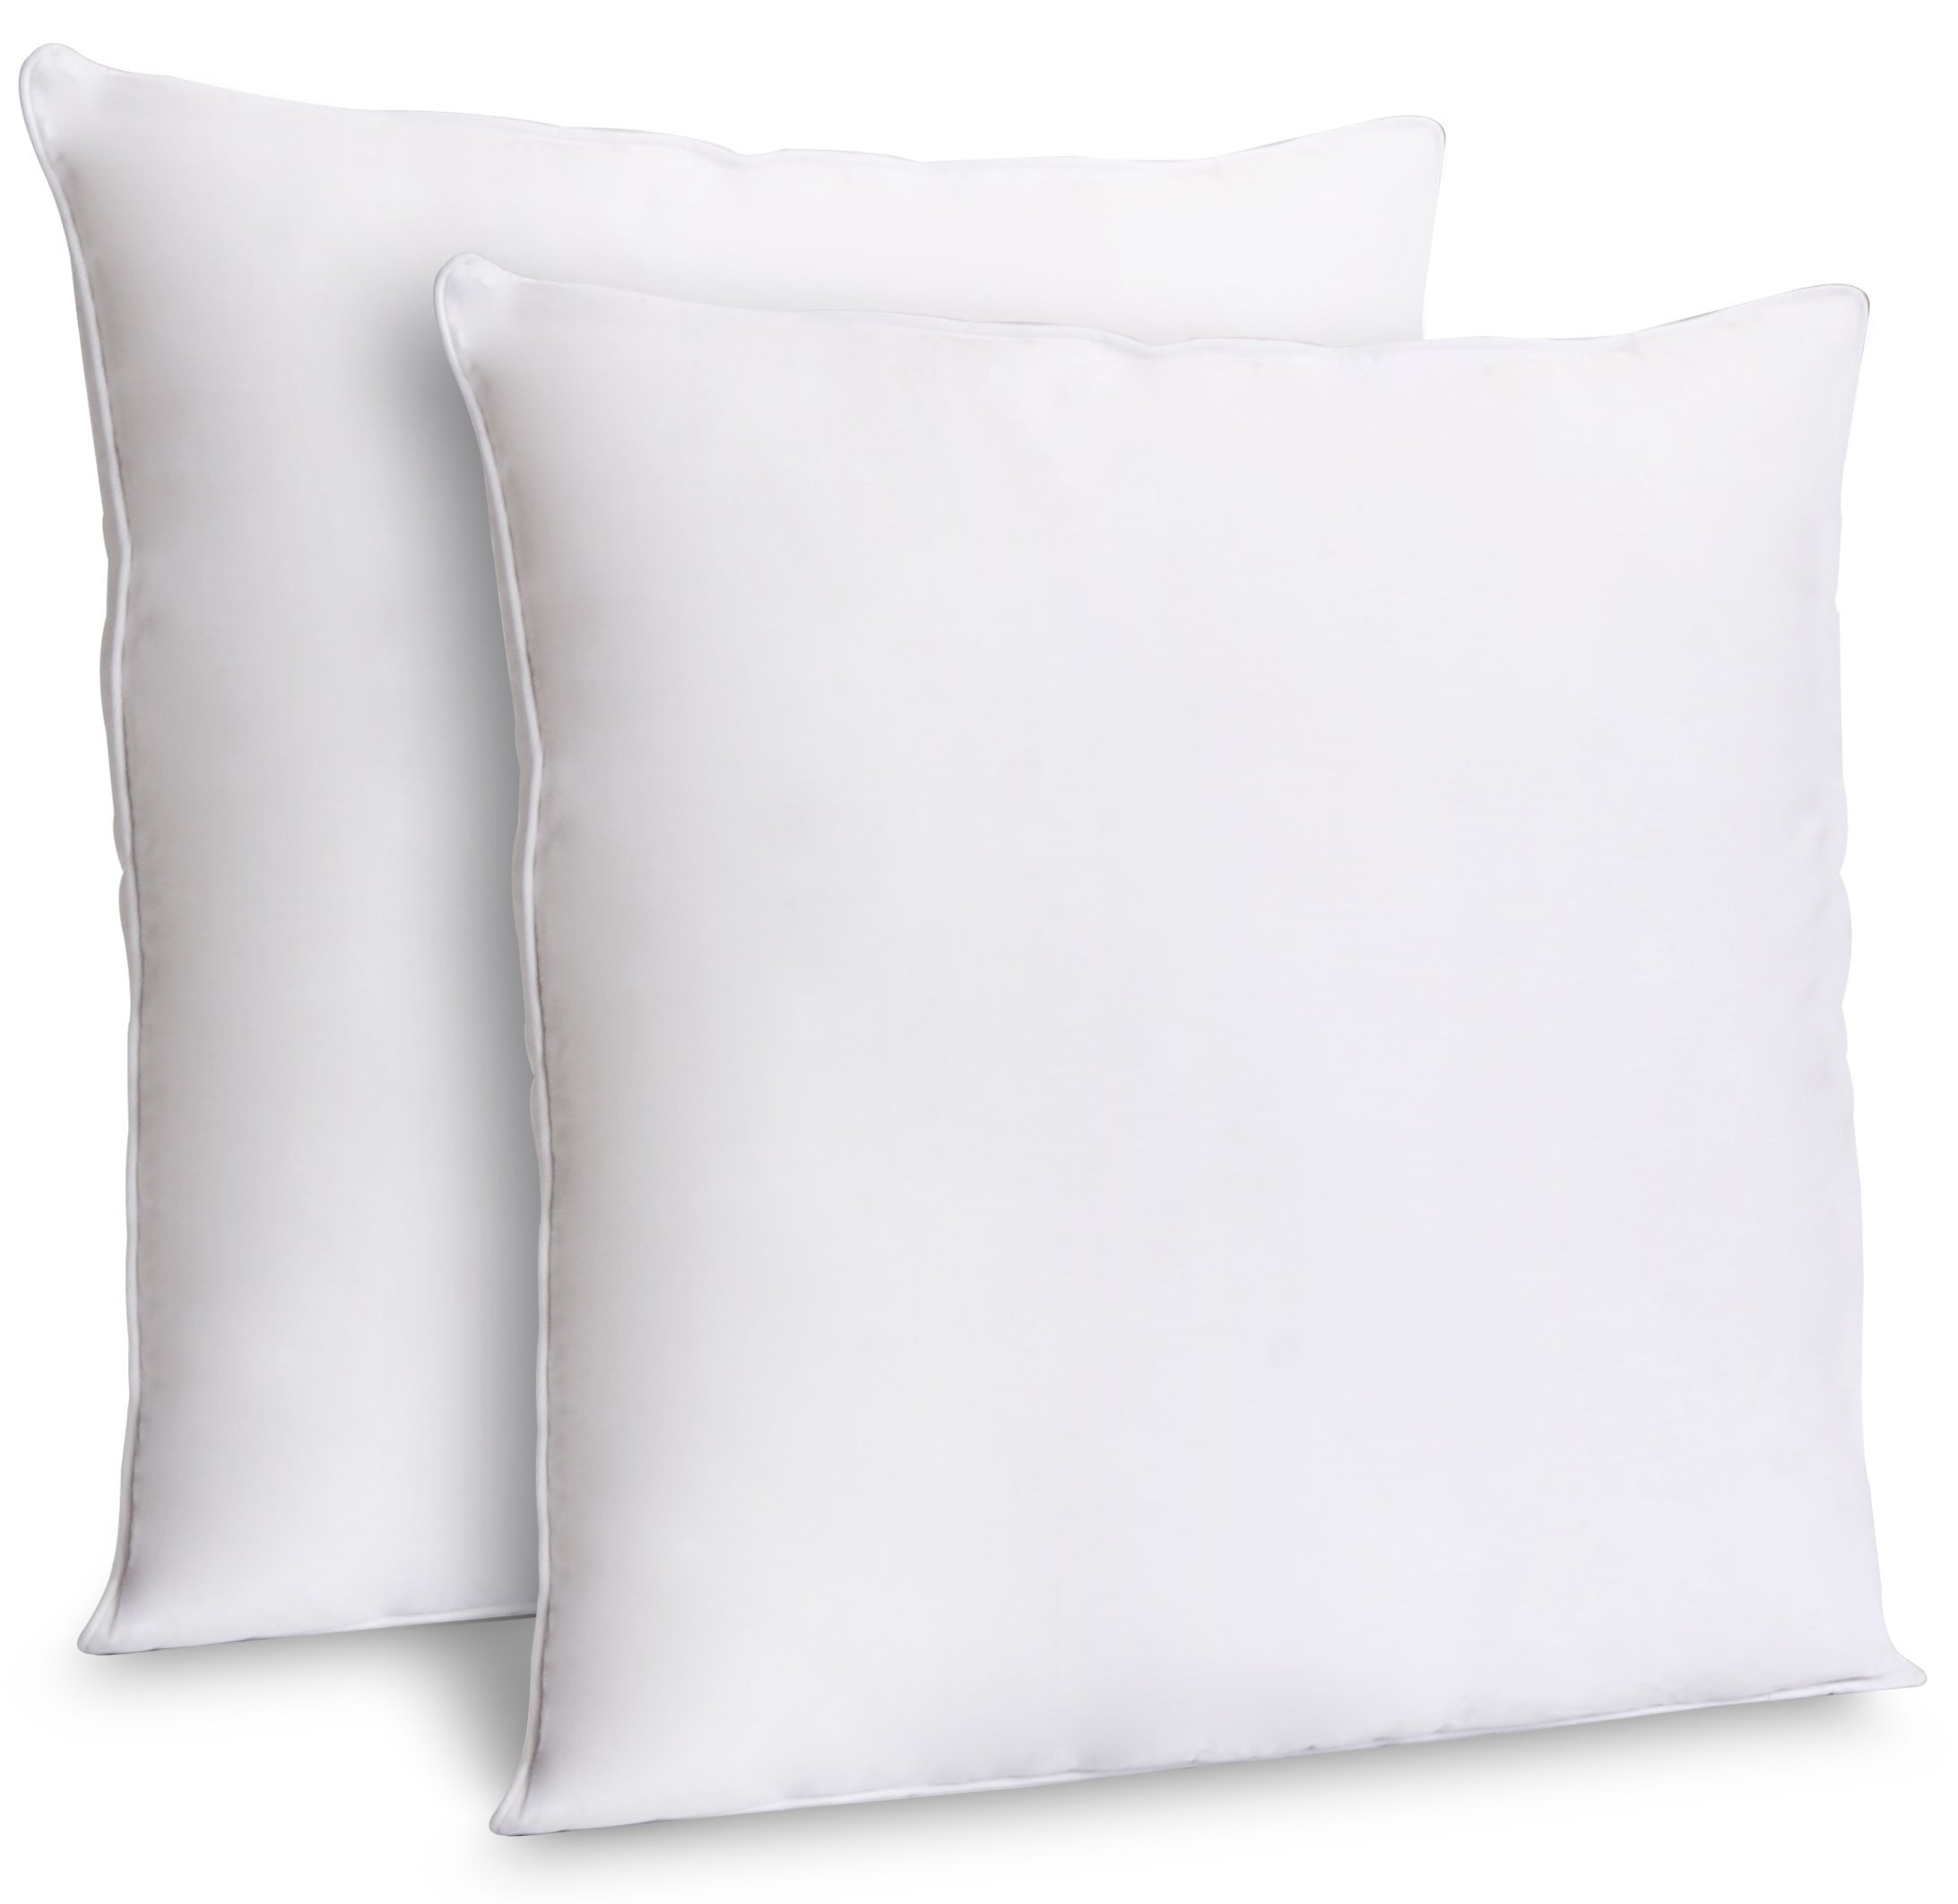 Zoyer Decorative Throw Pillow Inserts (2 Pack, White) - Square Indoor Sofa Pillows - Premium Poly Cotton Cover (16x16 Inch) by Zoyer